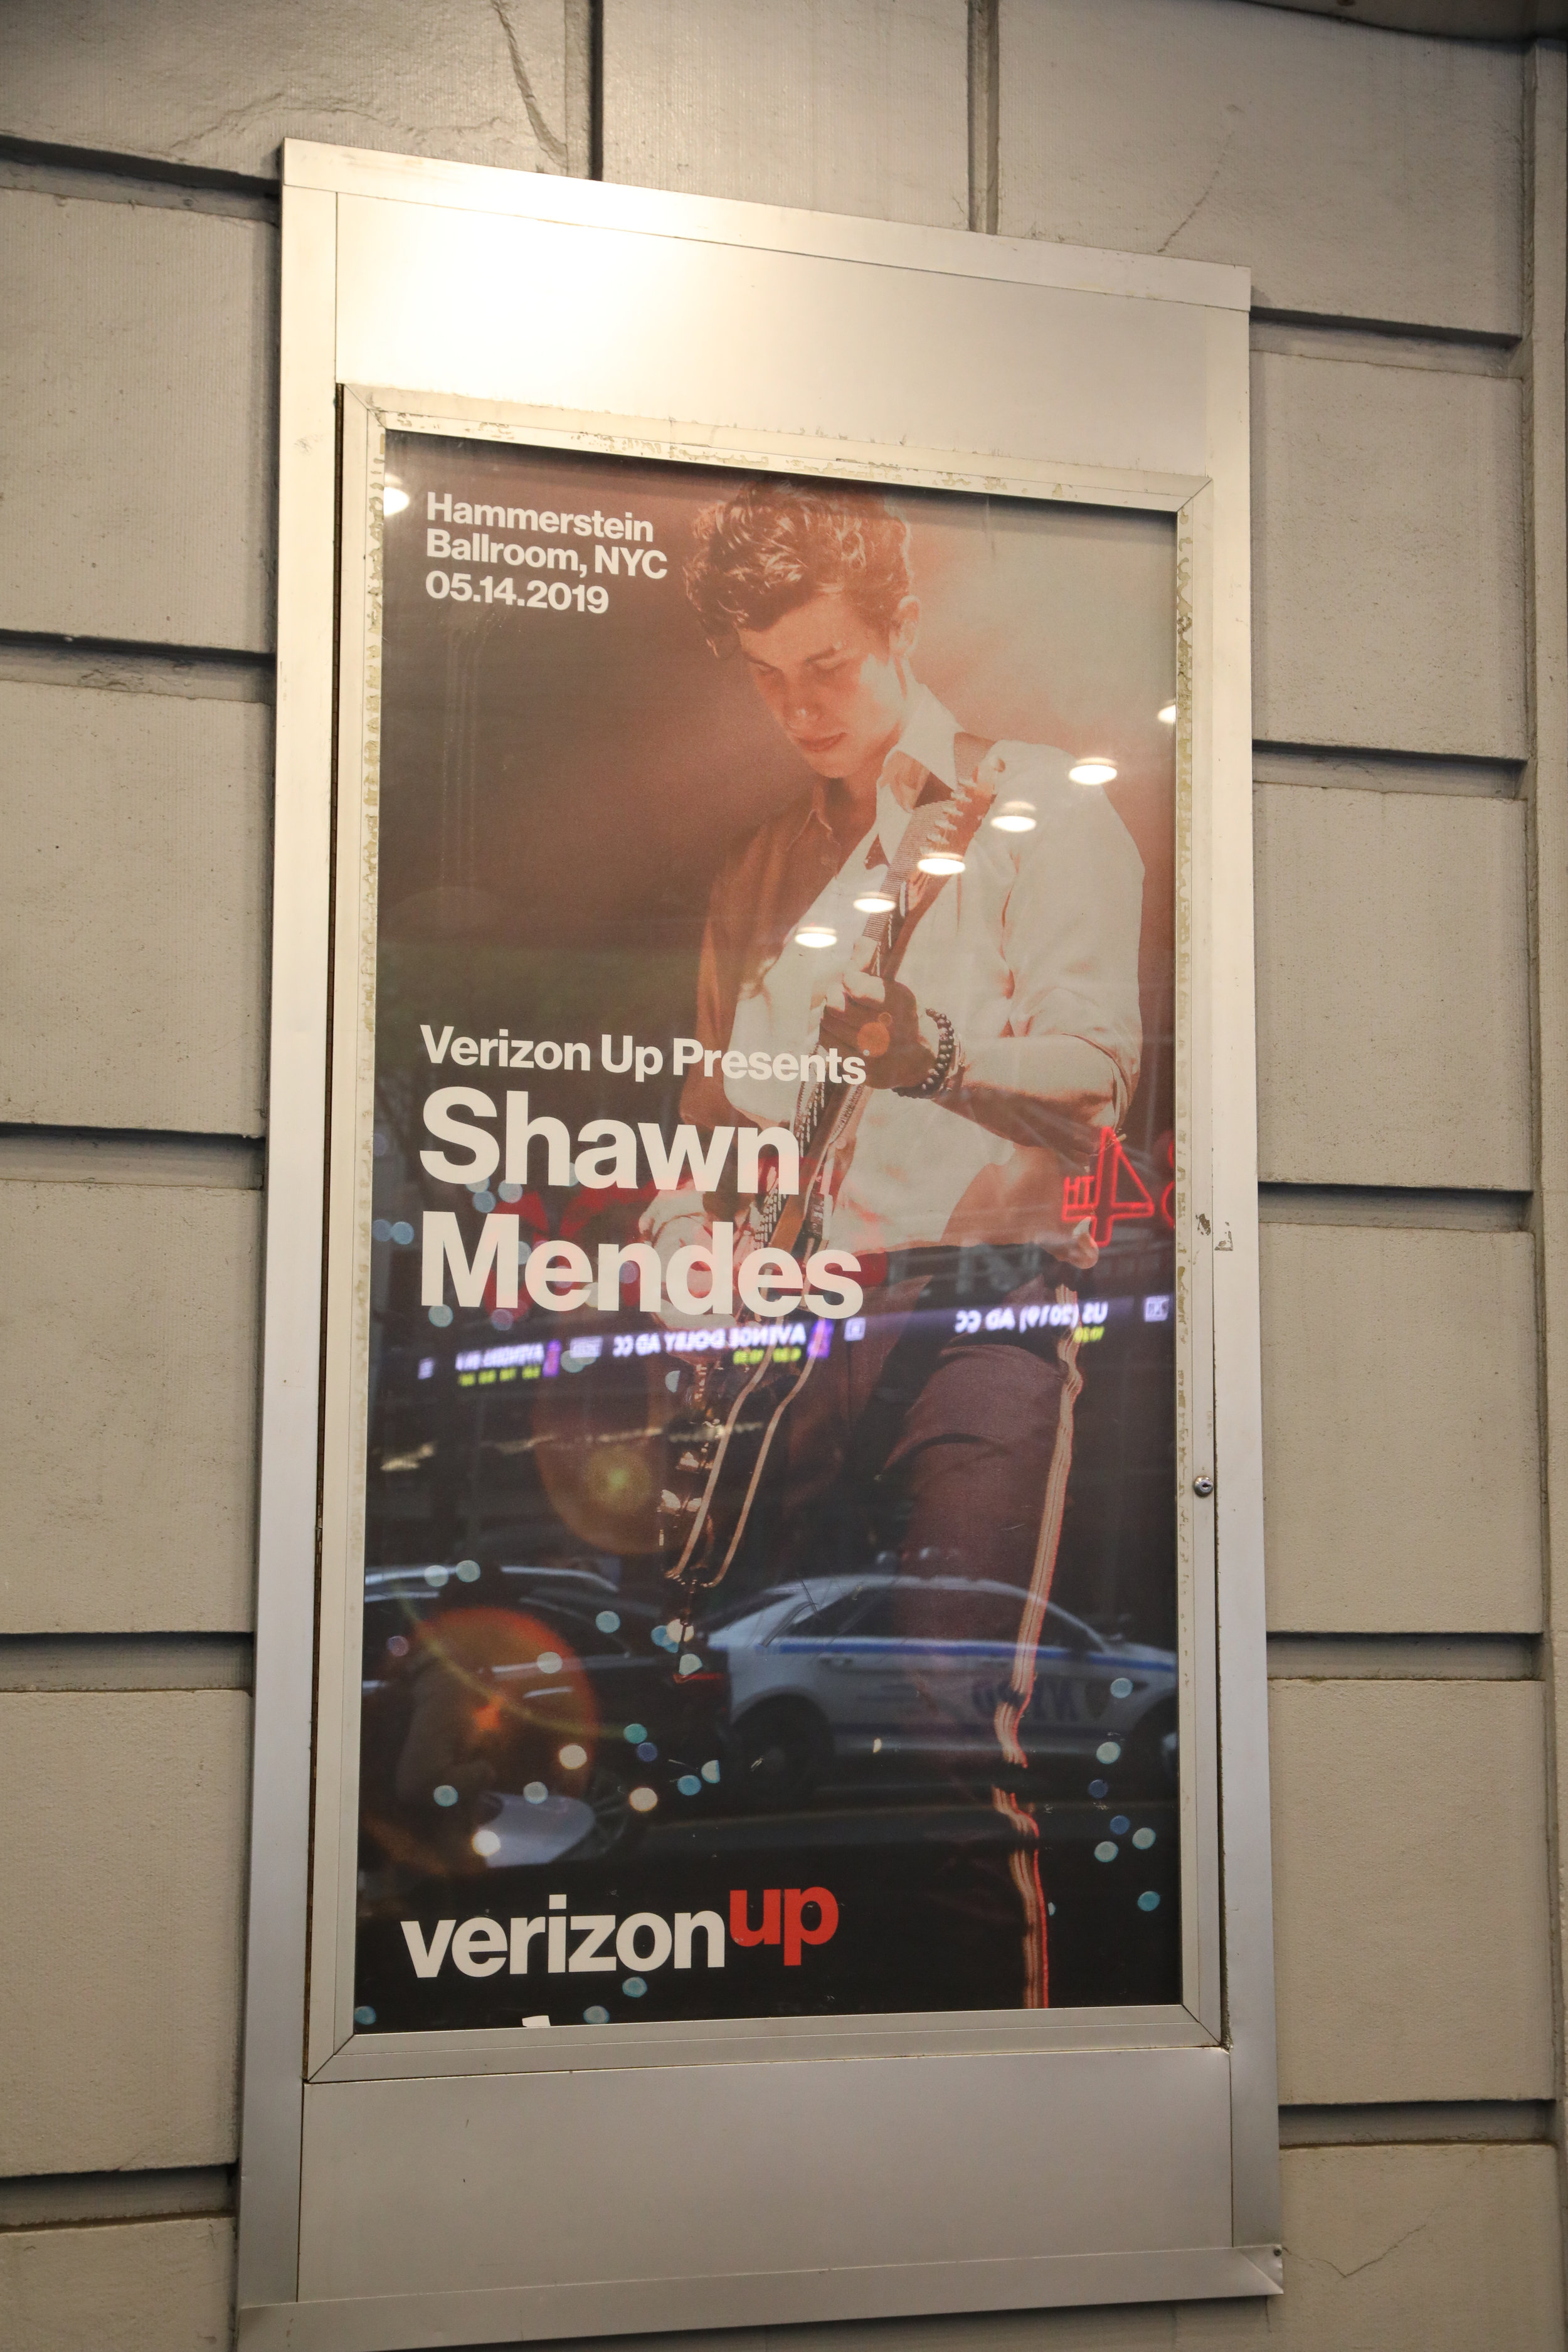 Verizon_ShawnMendes_NYC-260.jpg